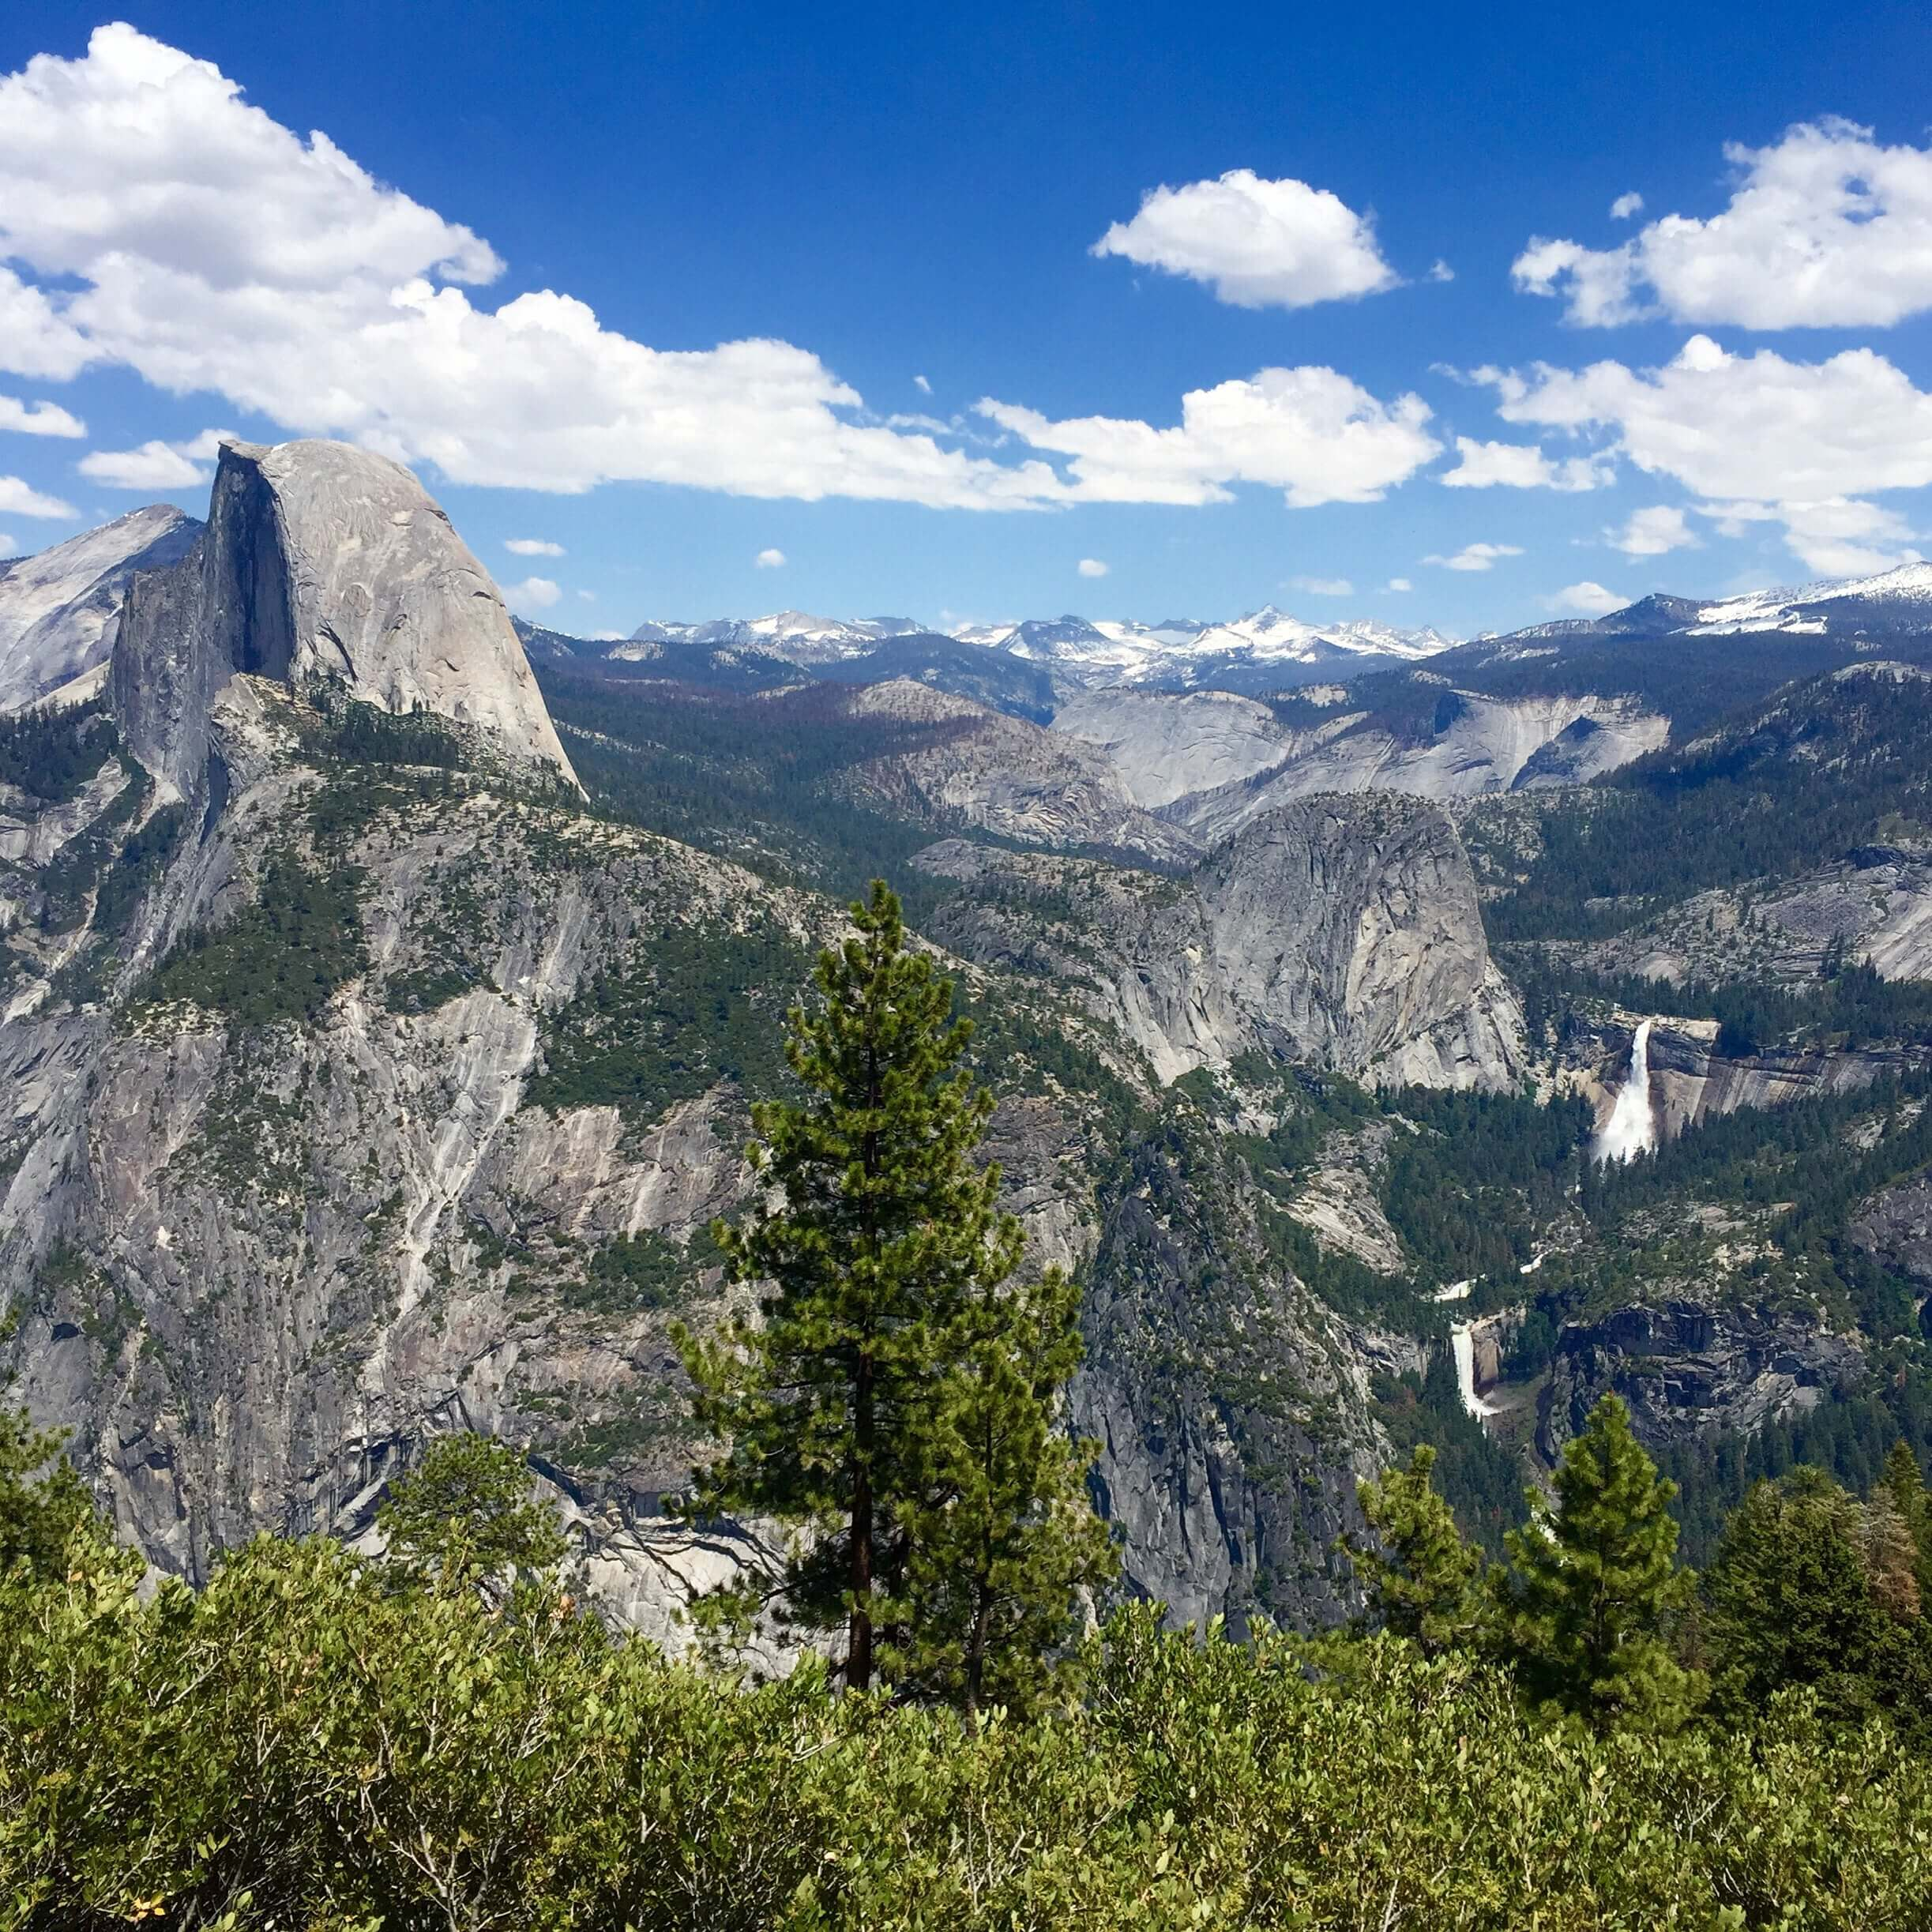 The Rockslides Hike at Yosemite - The Traveling Traveler